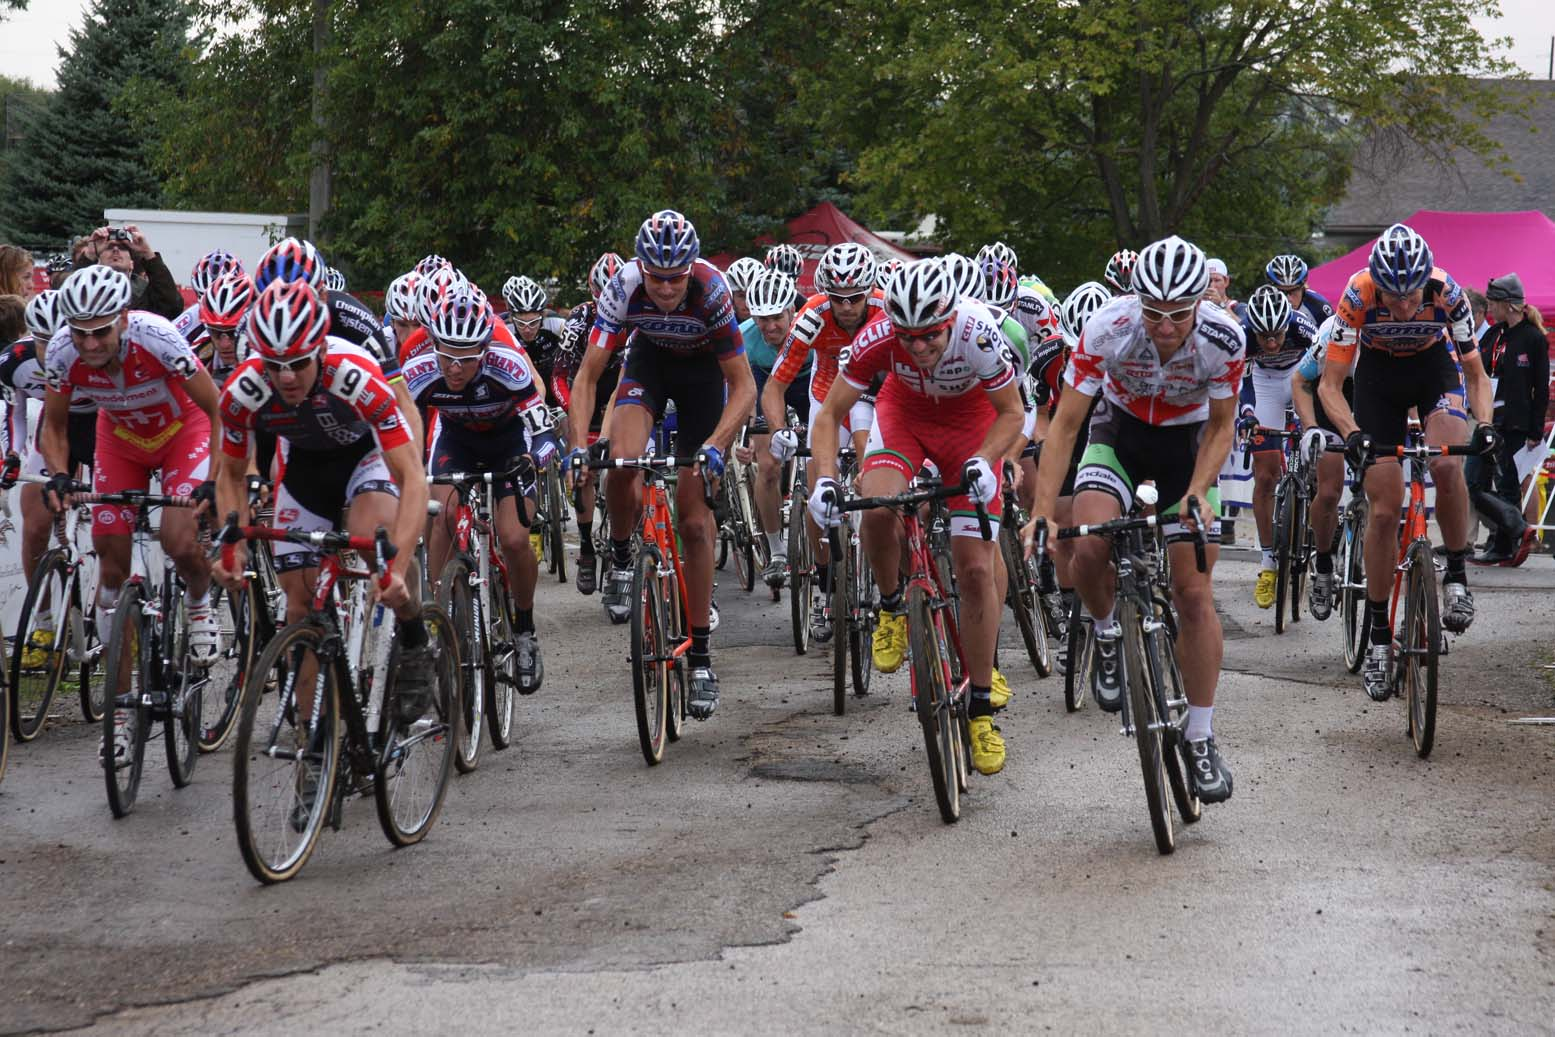 The holeshot was taken by Andy Jacques-Maynes (Bissel Pro Cycling) for the second day in a row. by Amy Dykema